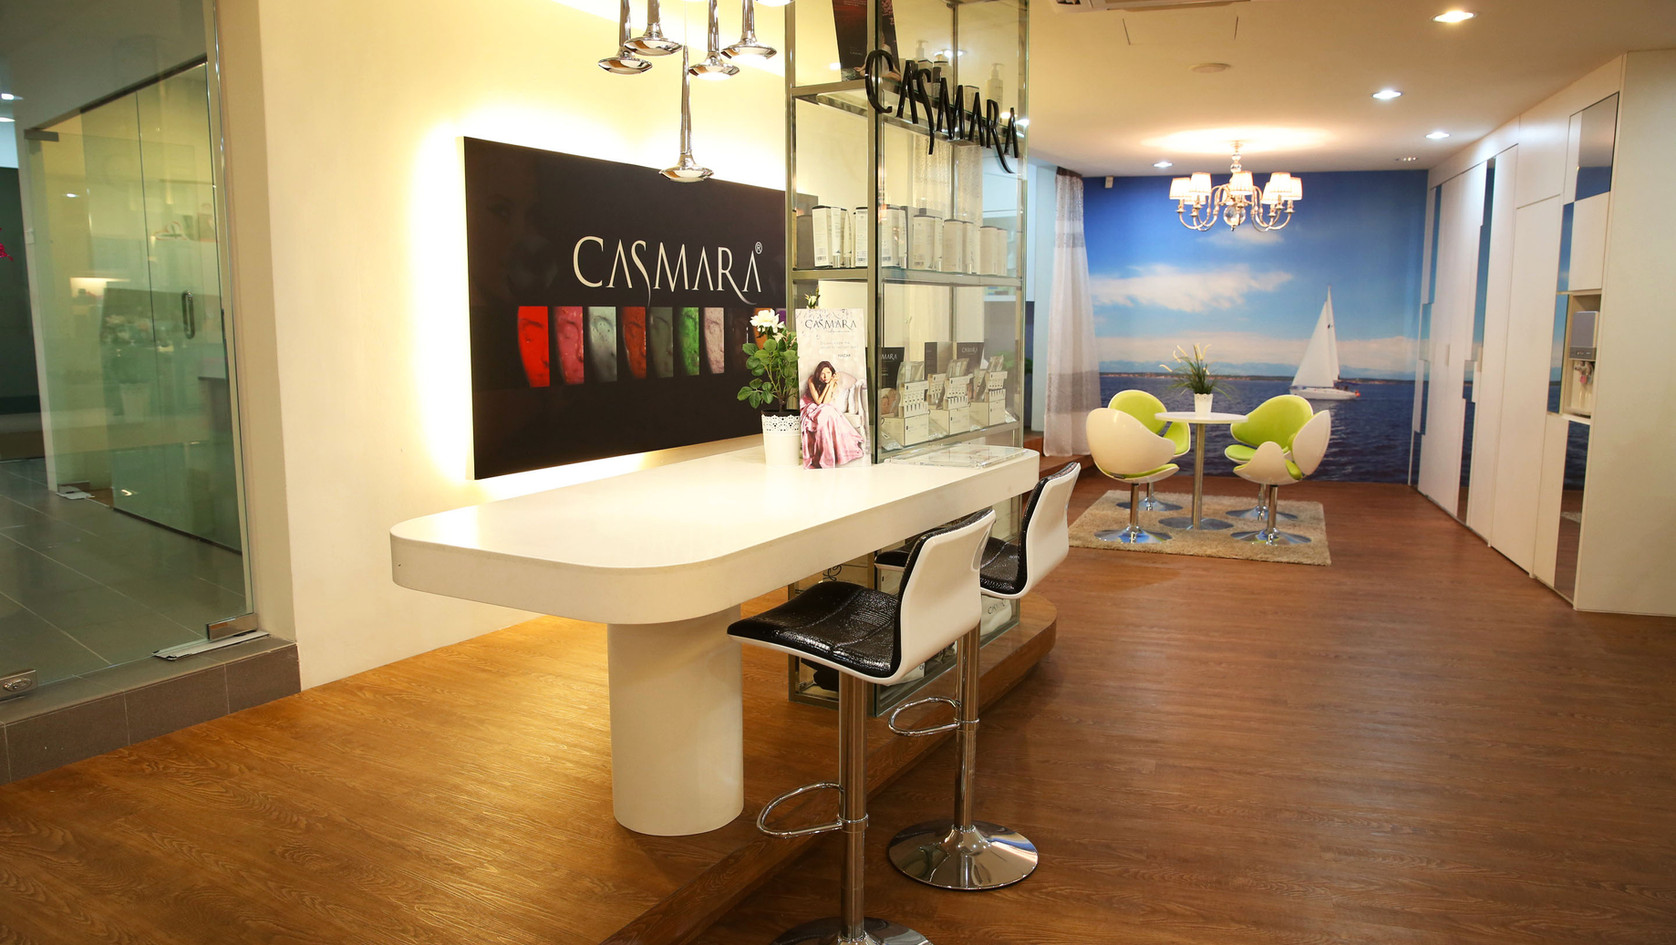 Casmara counter in PJ office